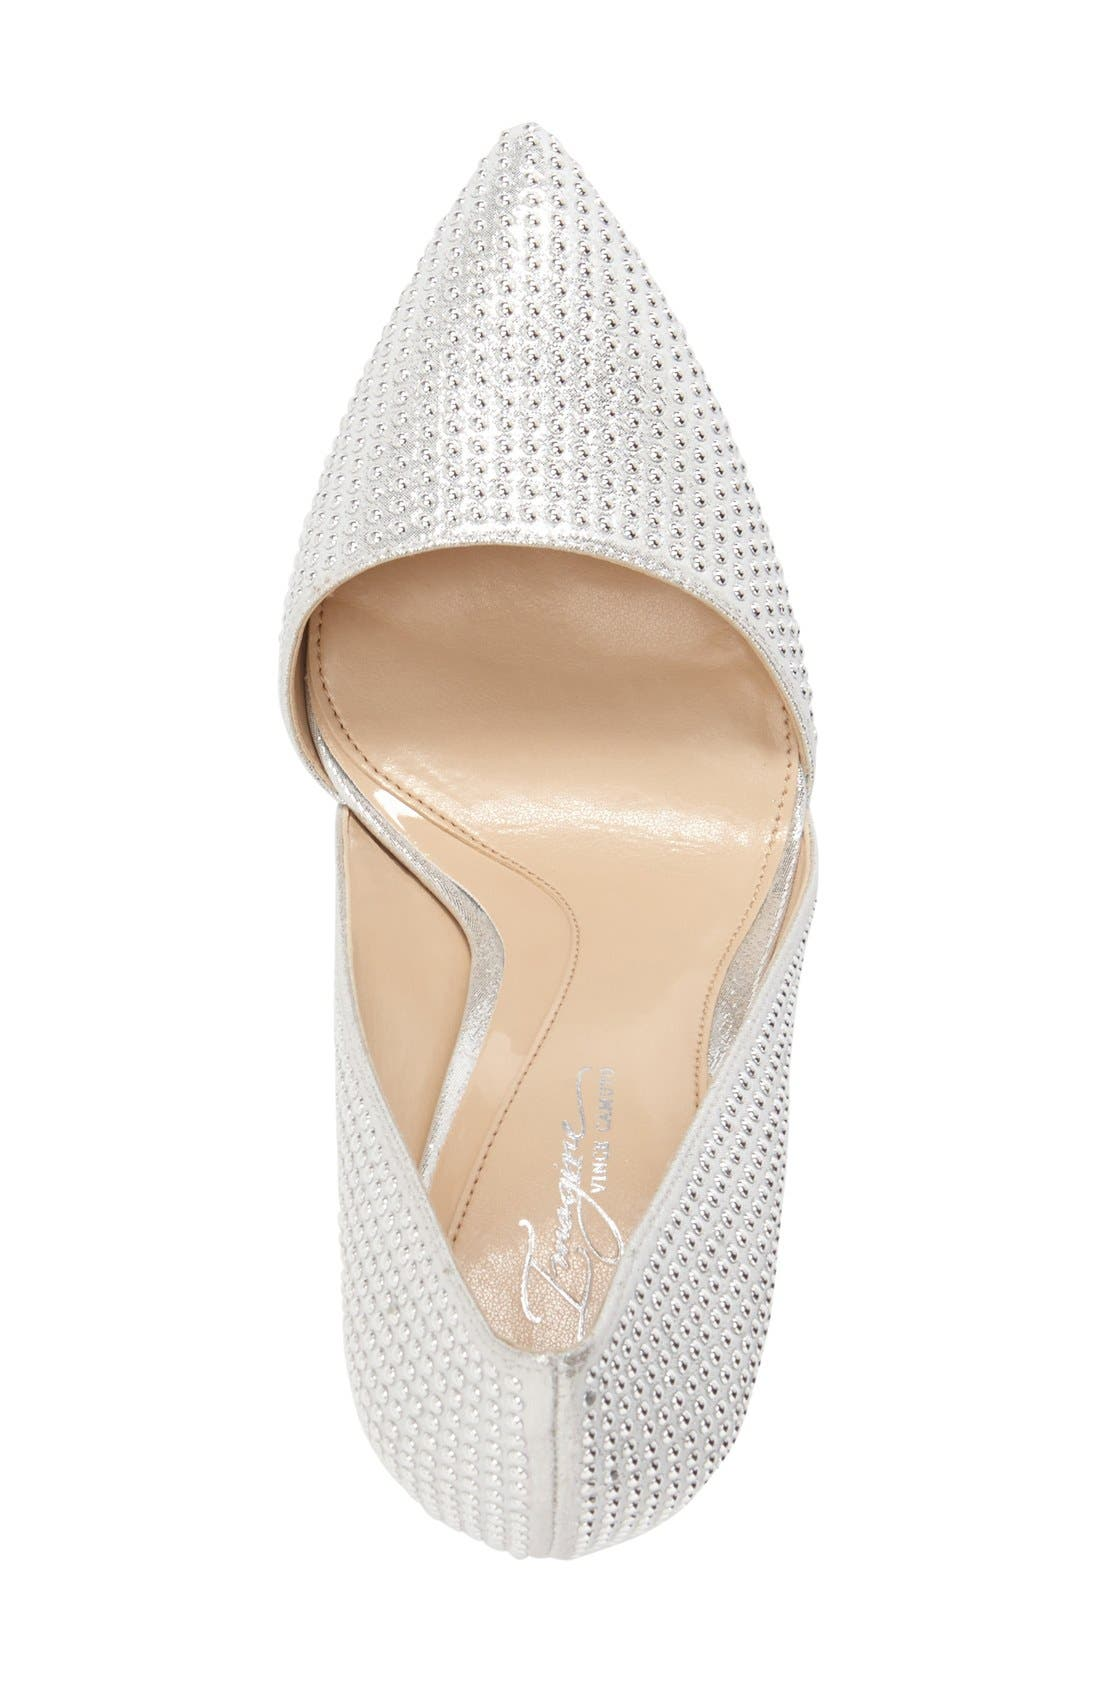 Imagine Vince Camuto 'Ossie' d'Orsay Pump,                             Alternate thumbnail 3, color,                             Platinum Shimmer